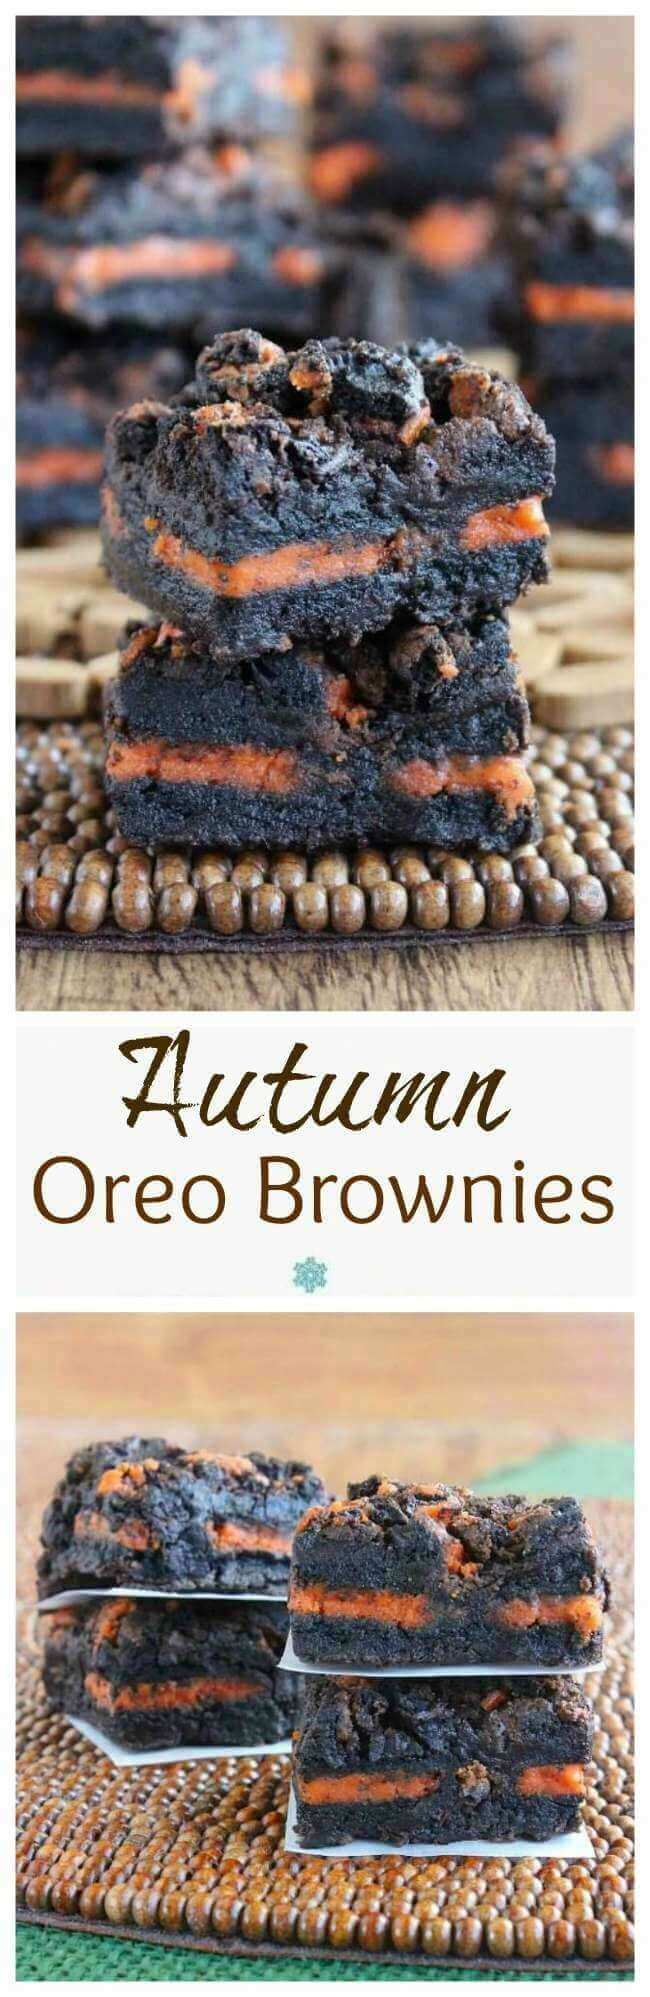 Autumn Oreo Brownies Recipe | Vegan in the Freezer